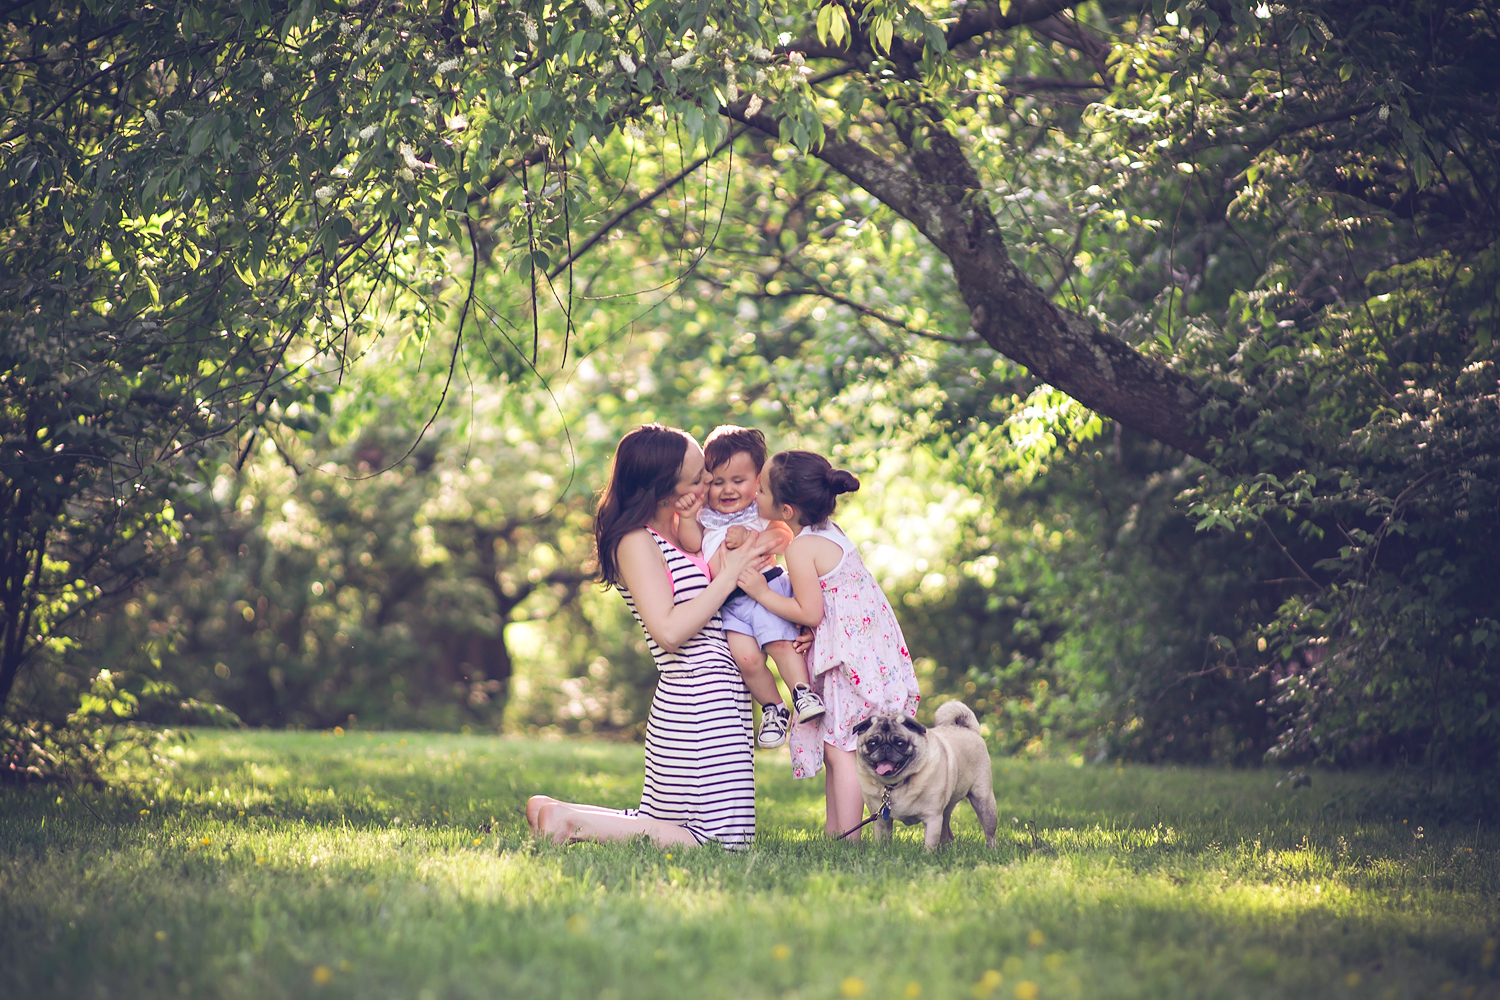 family and baby with pet pug dog | Tonya Teran Photography - Rockville, MD Newborn Baby and Family Photography